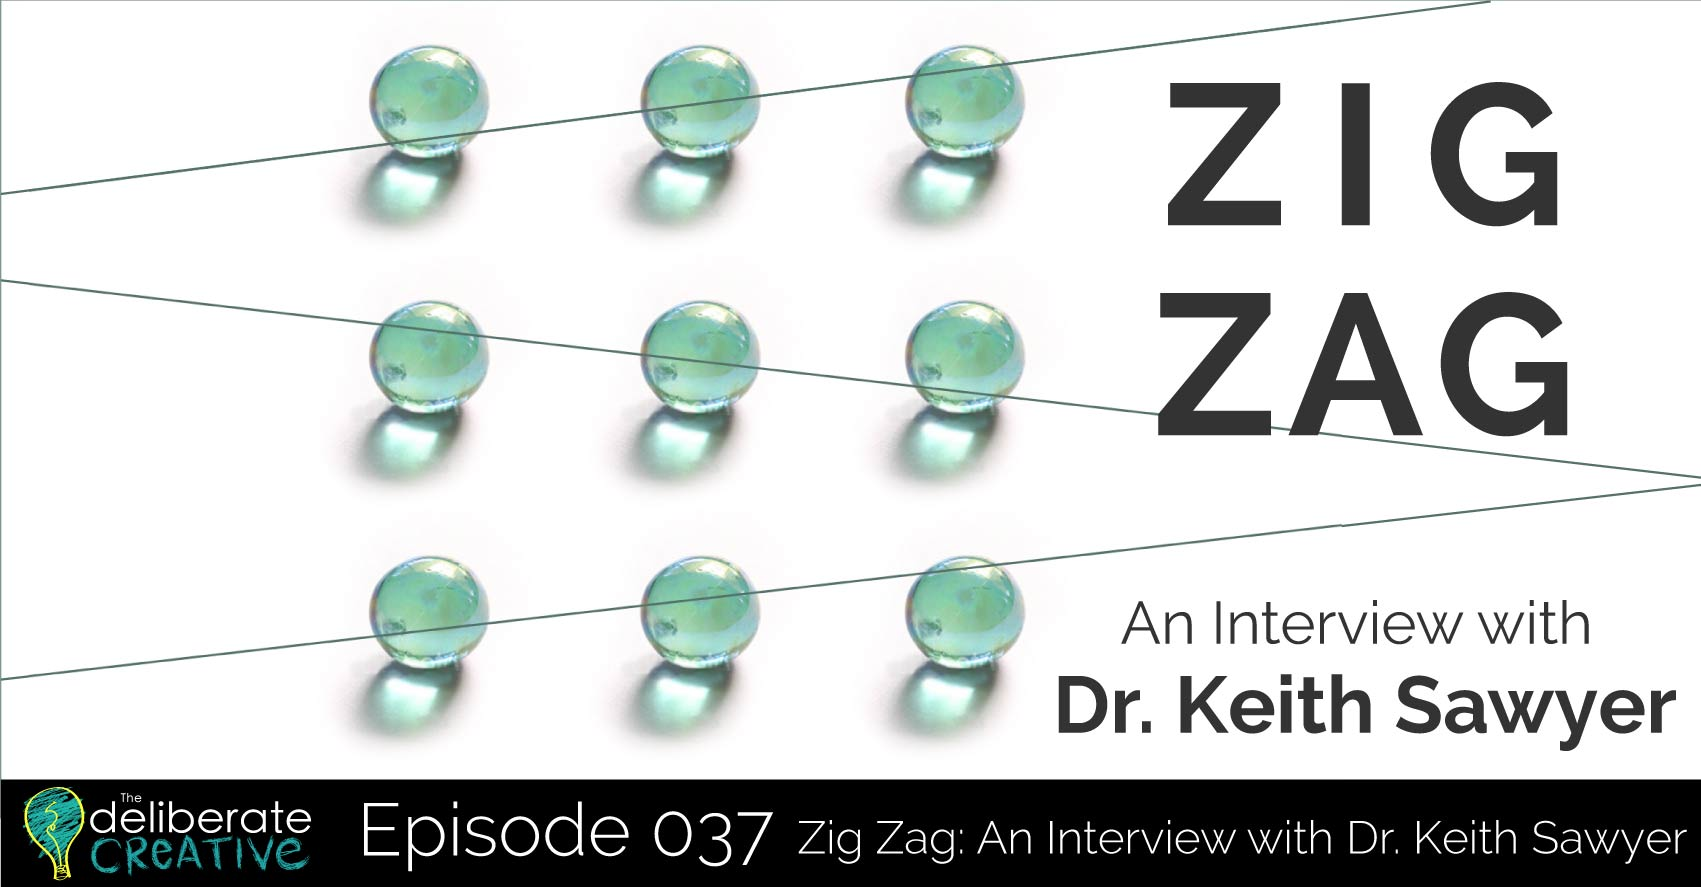 The Deliberate Creative Podcast Episode 37: An Interview with Dr. Keith Sawyer